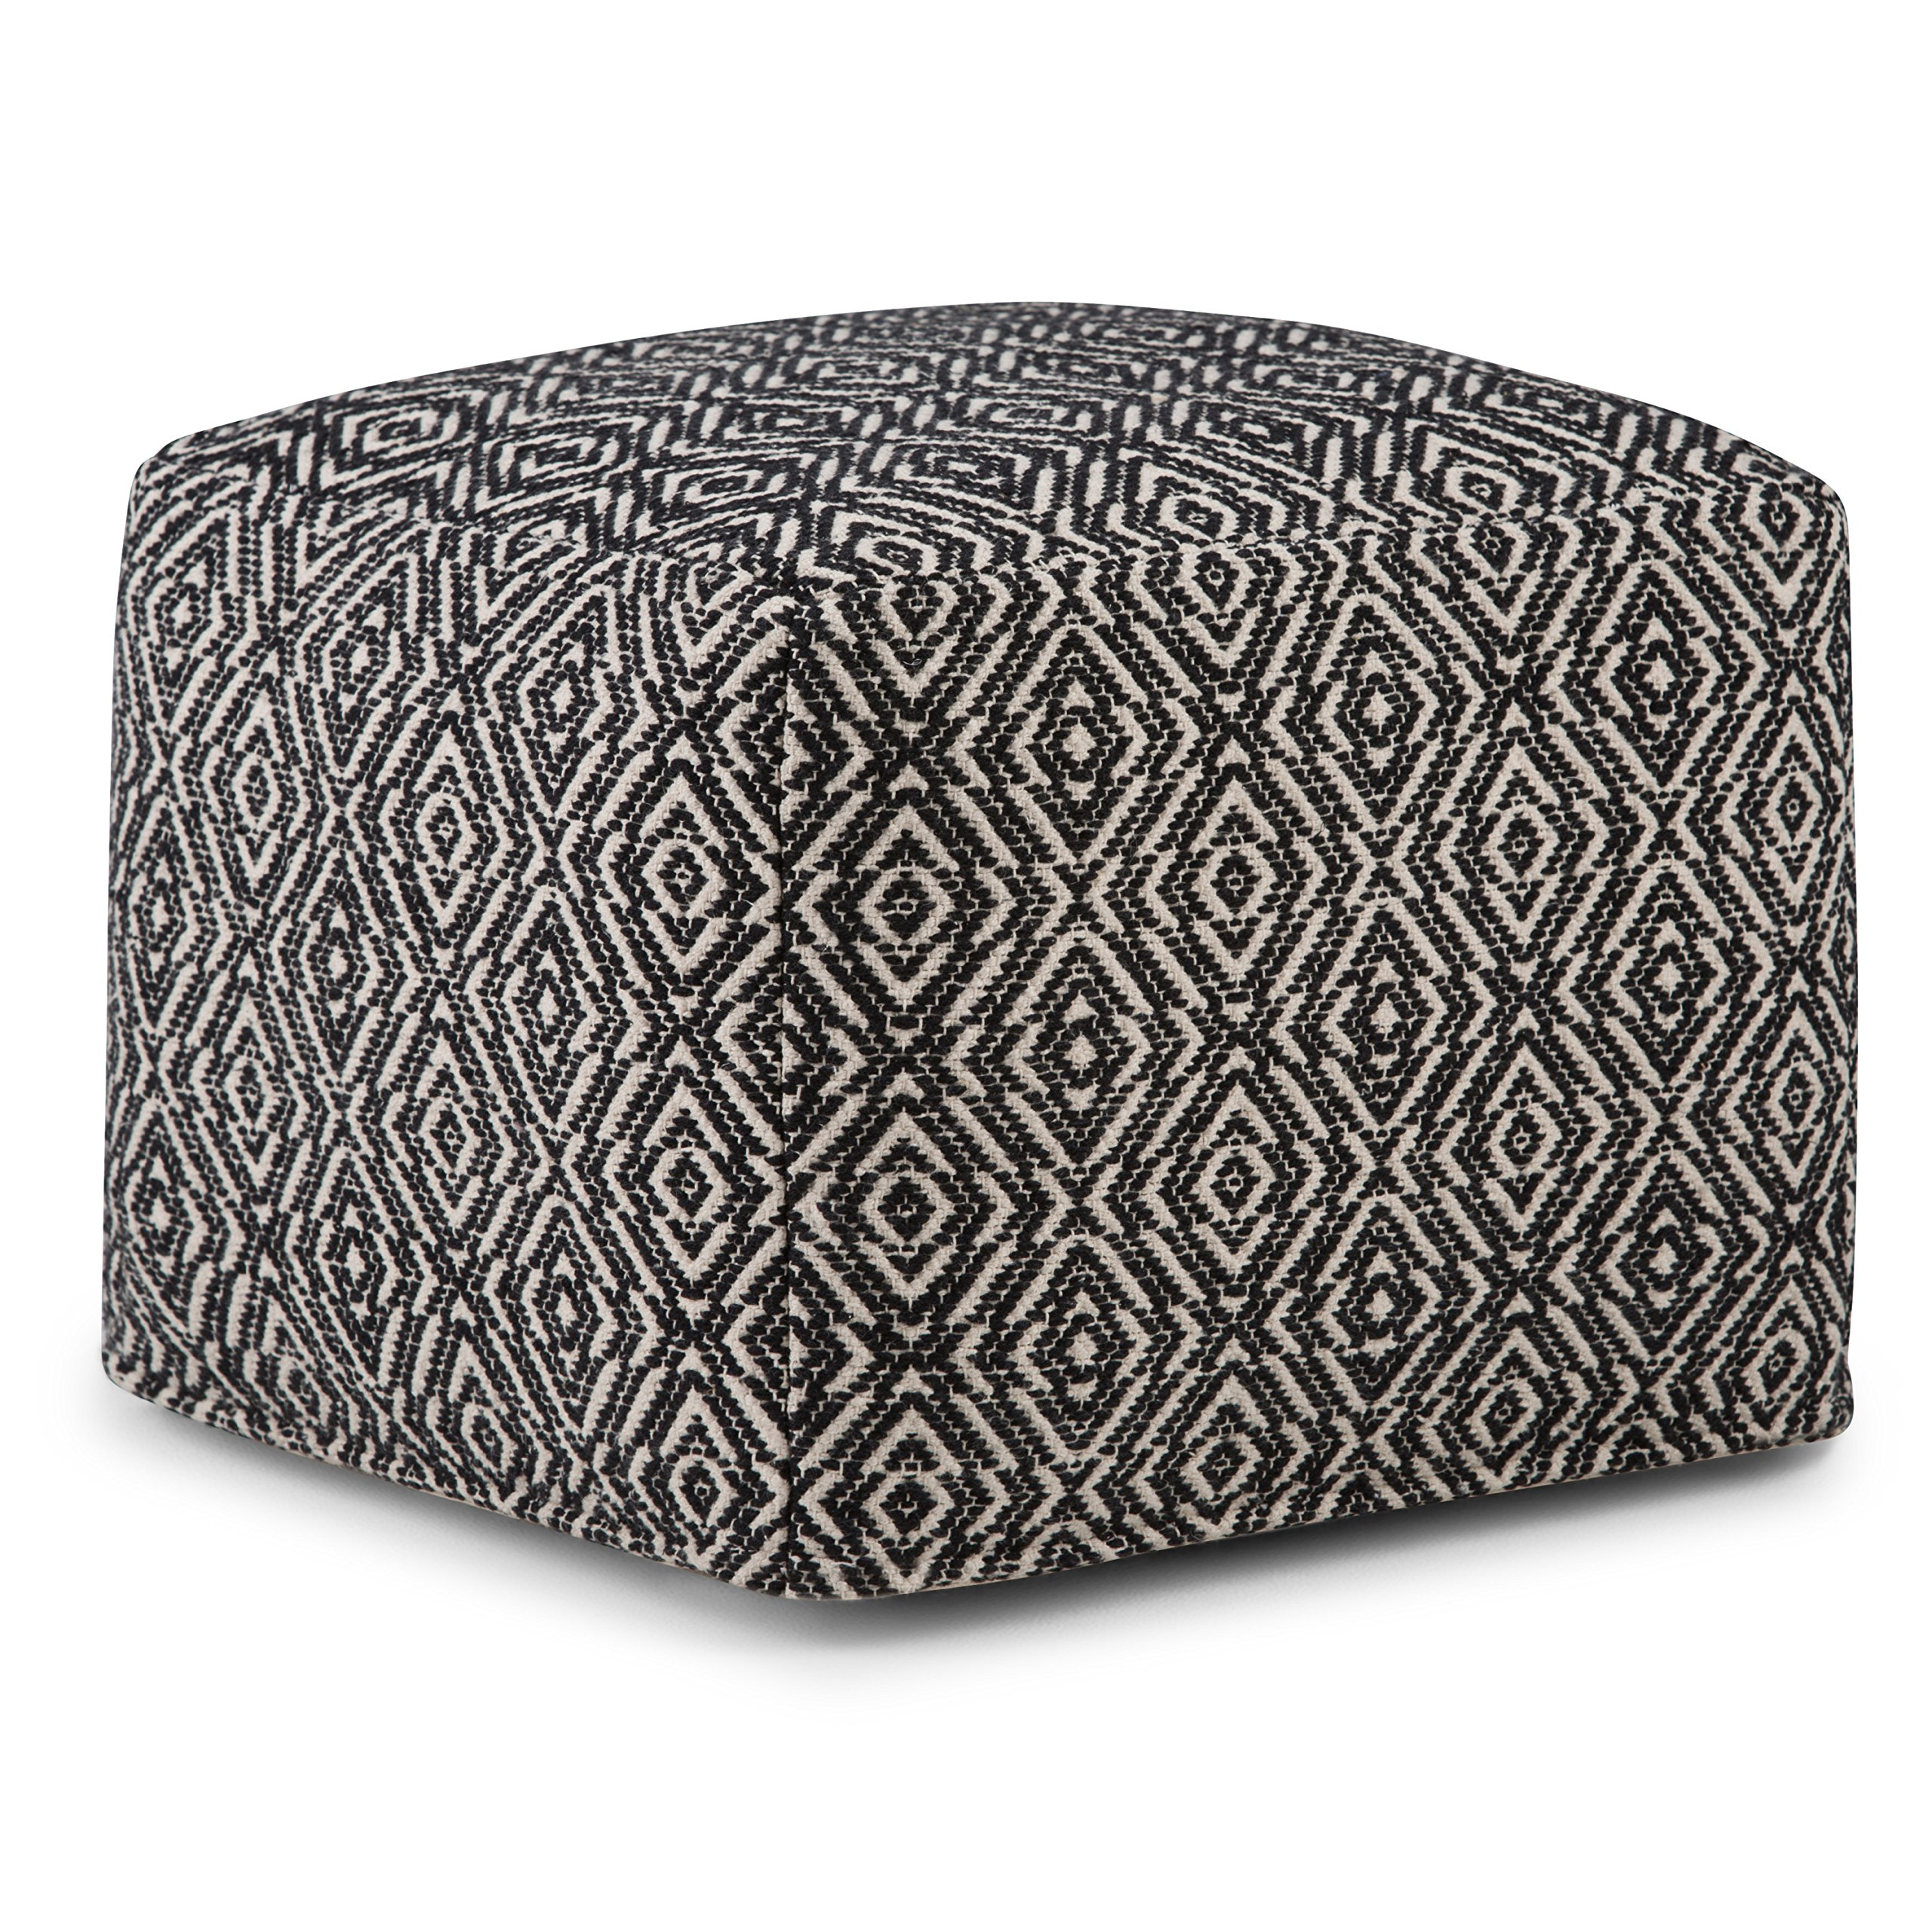 Simpli Home Graham Square Pouf, Patterned Black and Natural